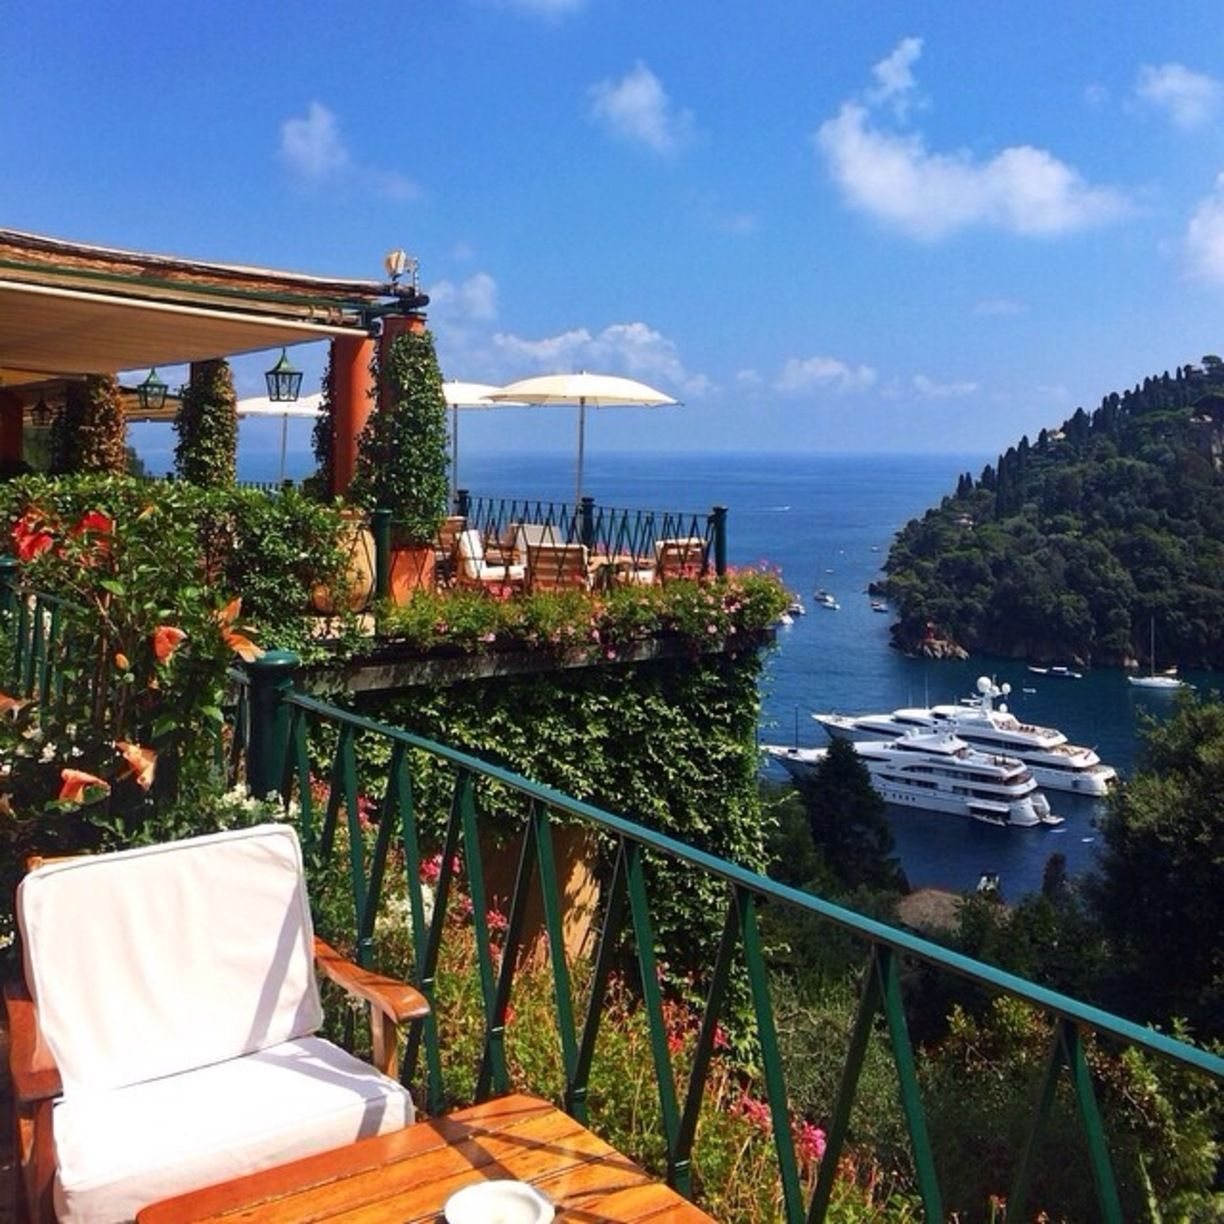 Belmond Hotel Splendido Portofino Italy By Fen The Has A Lot Of Spots For Guests To Enjoy Their Time And View